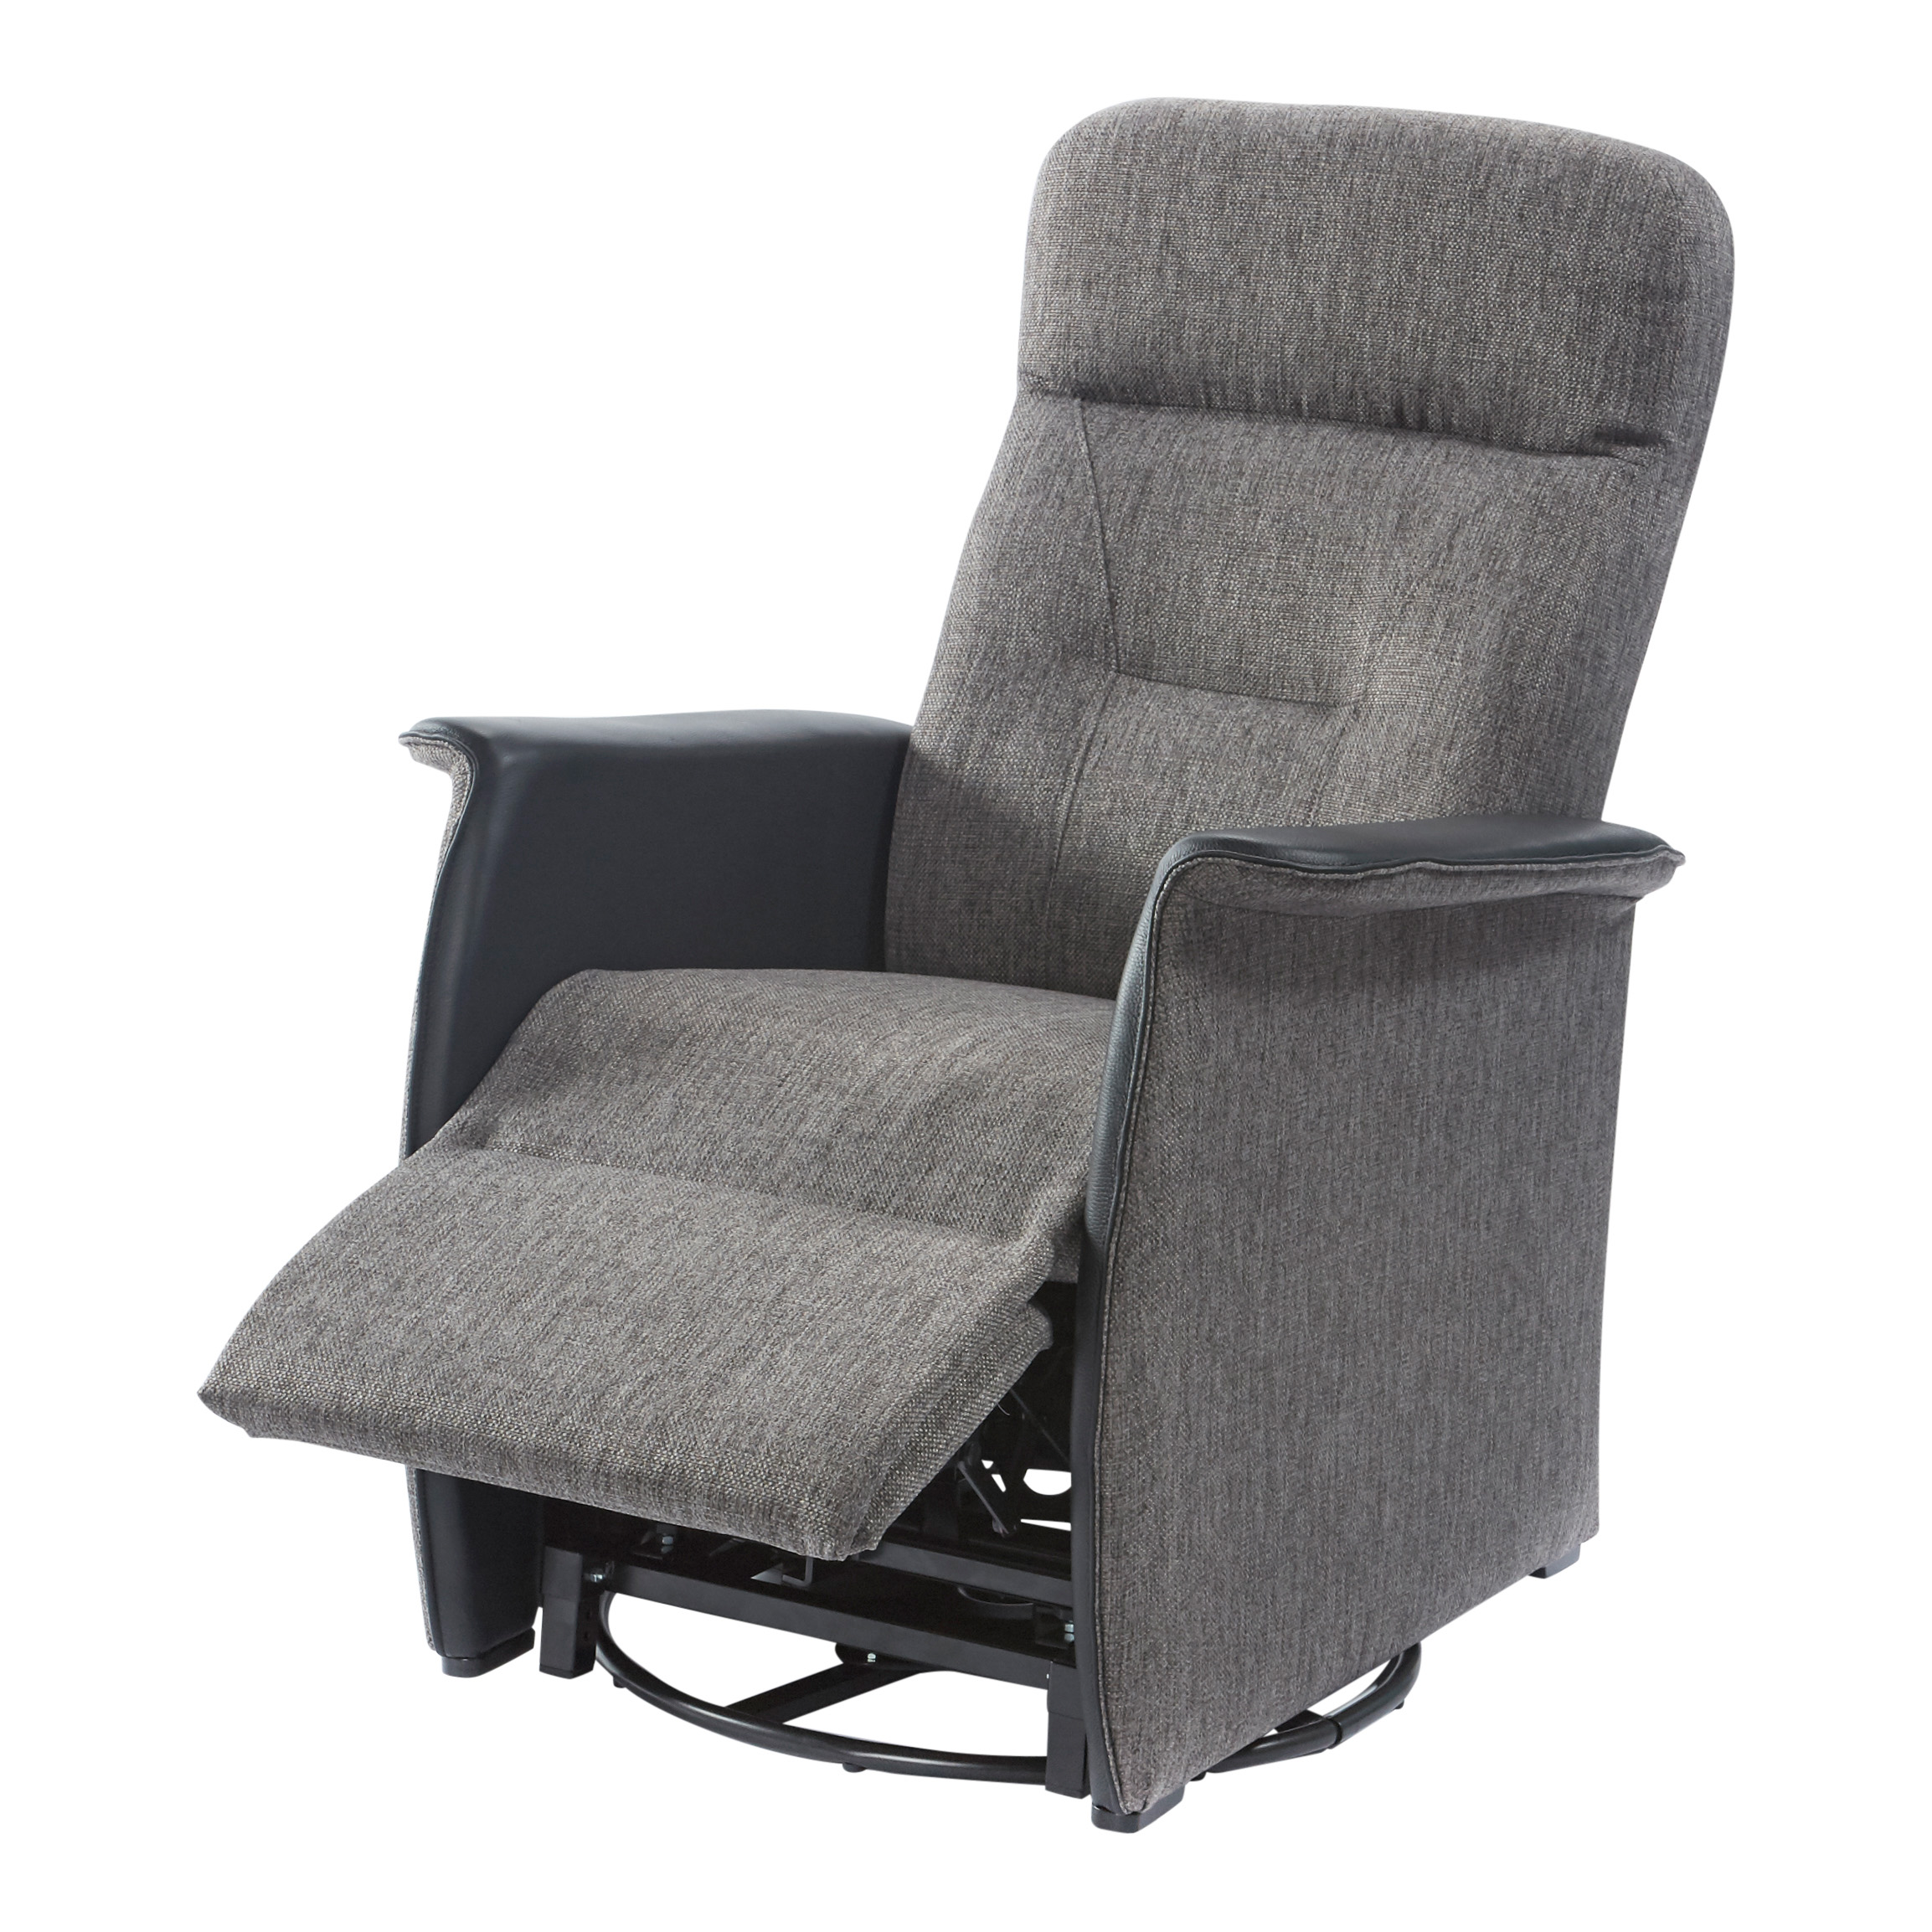 Variance relaxfauteuil - datzitgoed.com